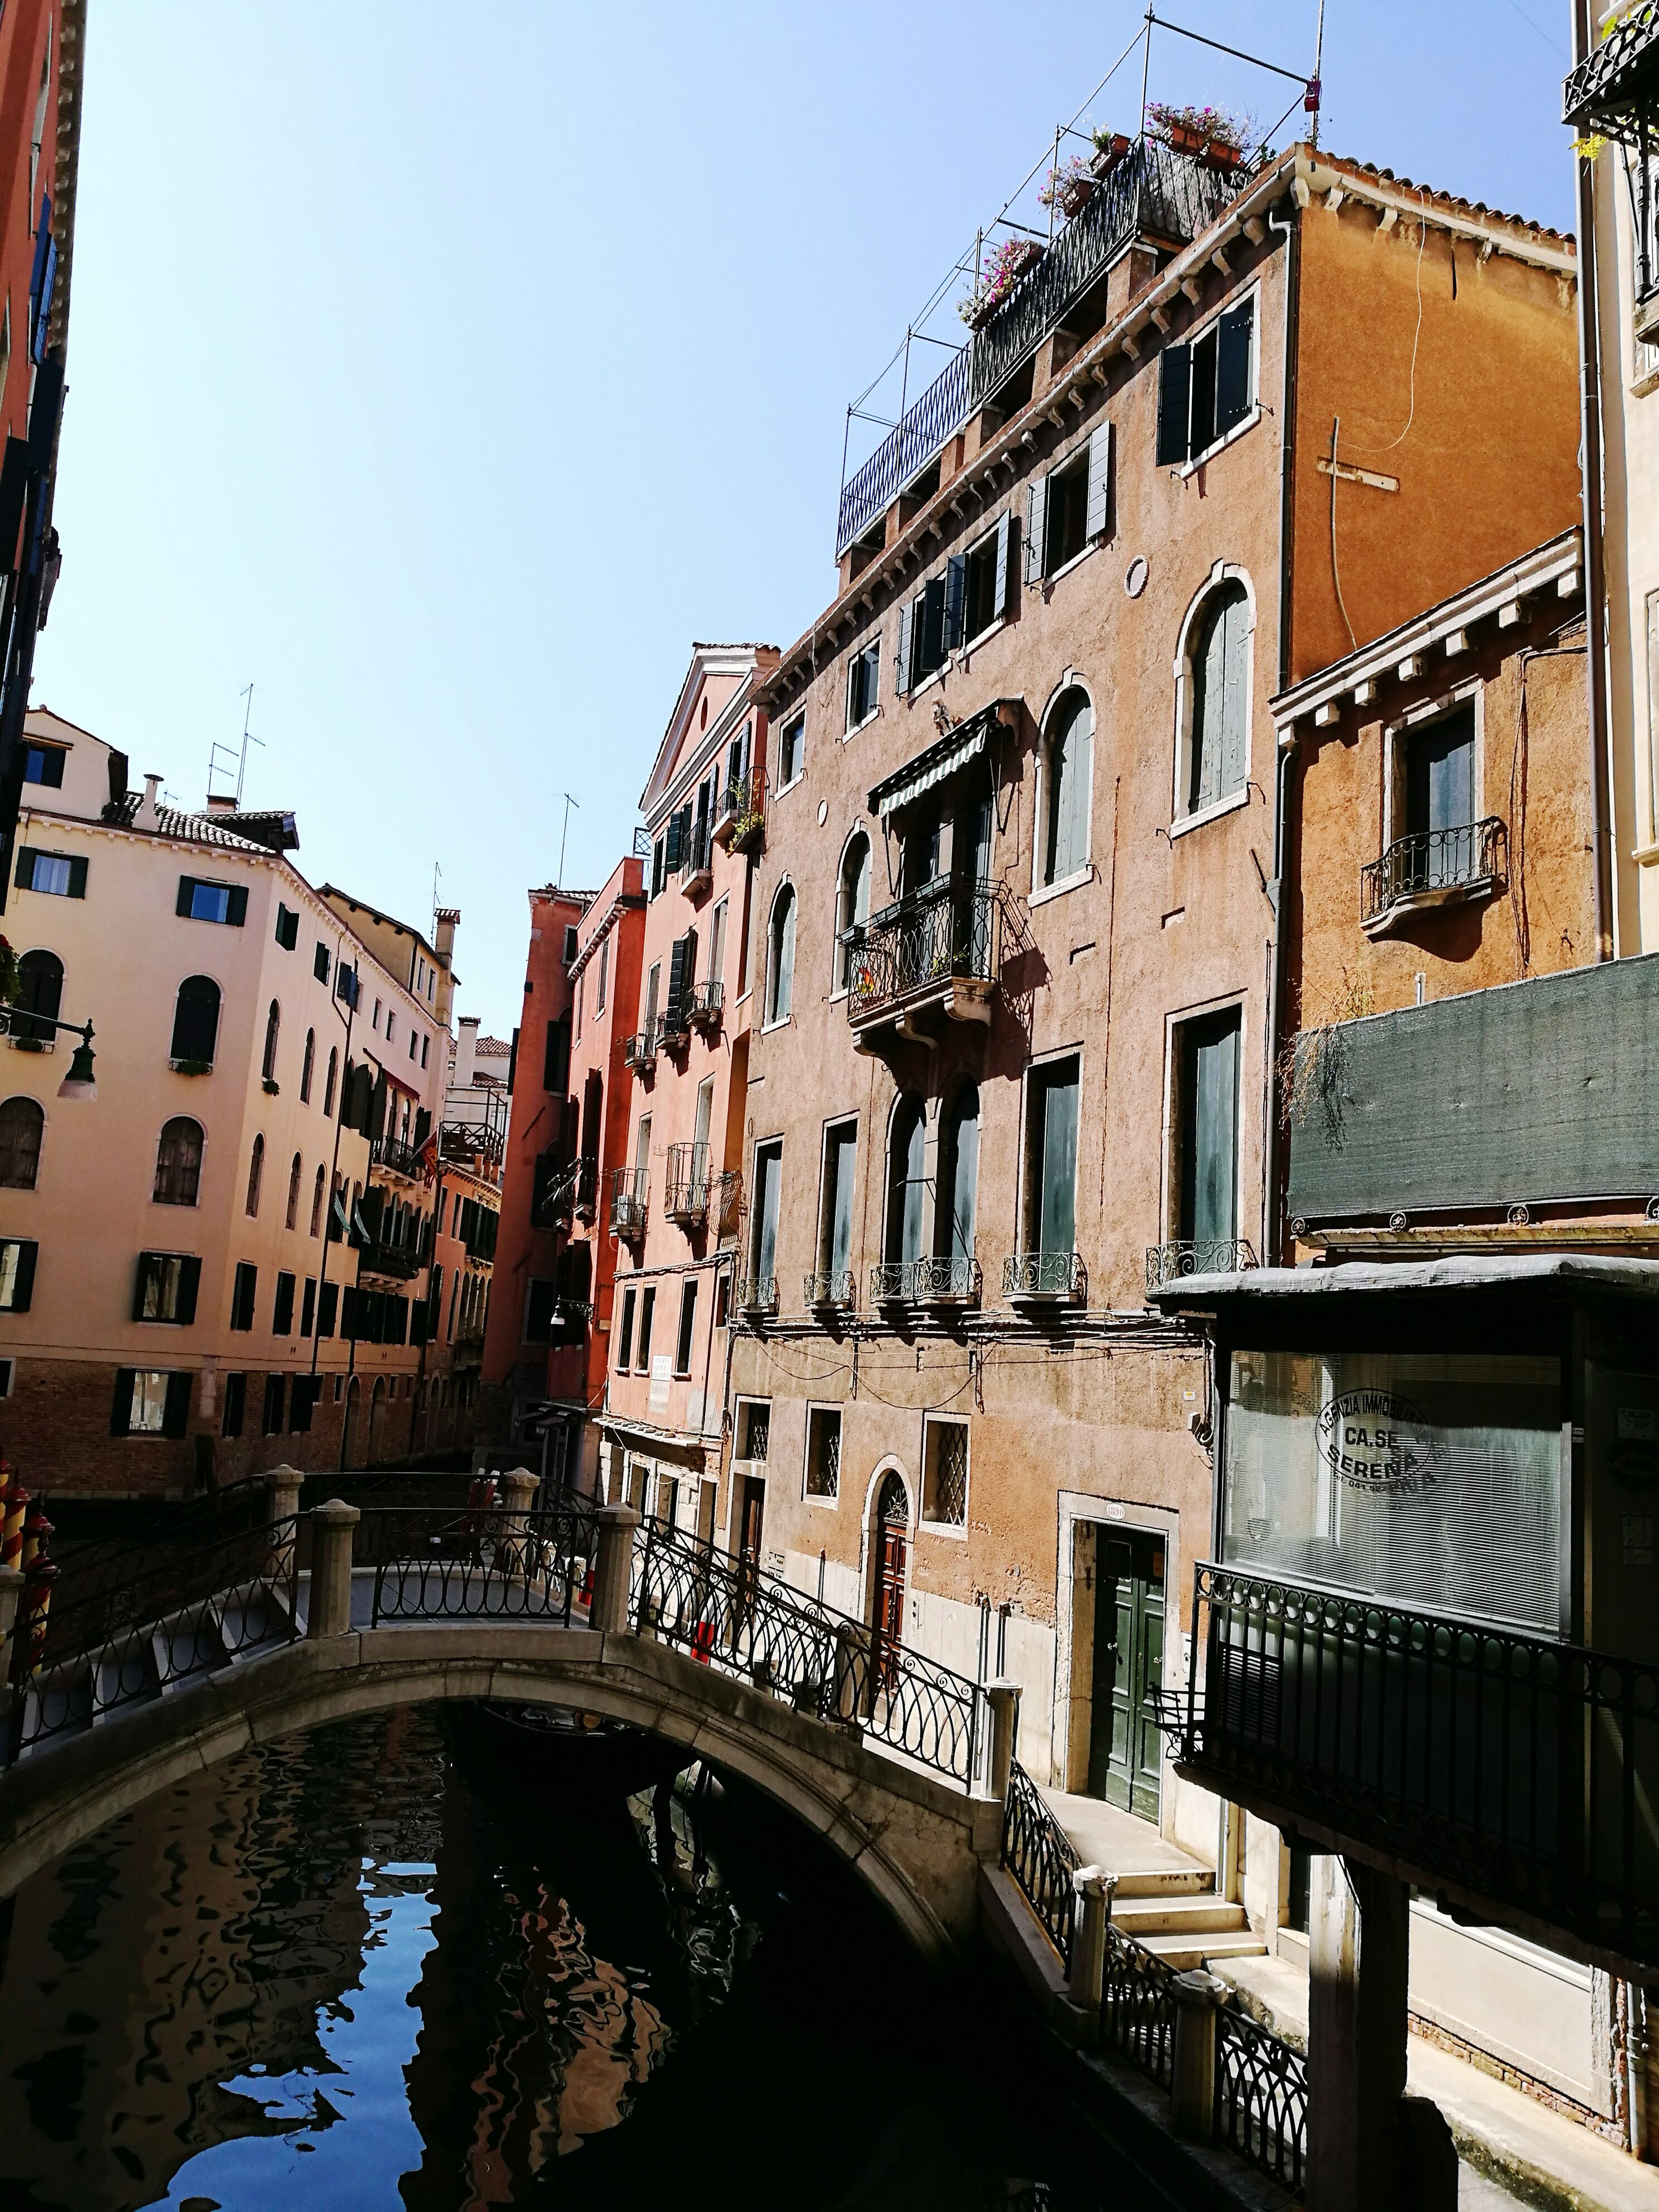 architecture, built structure, building exterior, connection, bridge - man made structure, water, city, clear sky, canal, window, residential building, bridge, day, river, old town, arch, city life, outdoors, waterfront, no people, town, residential district